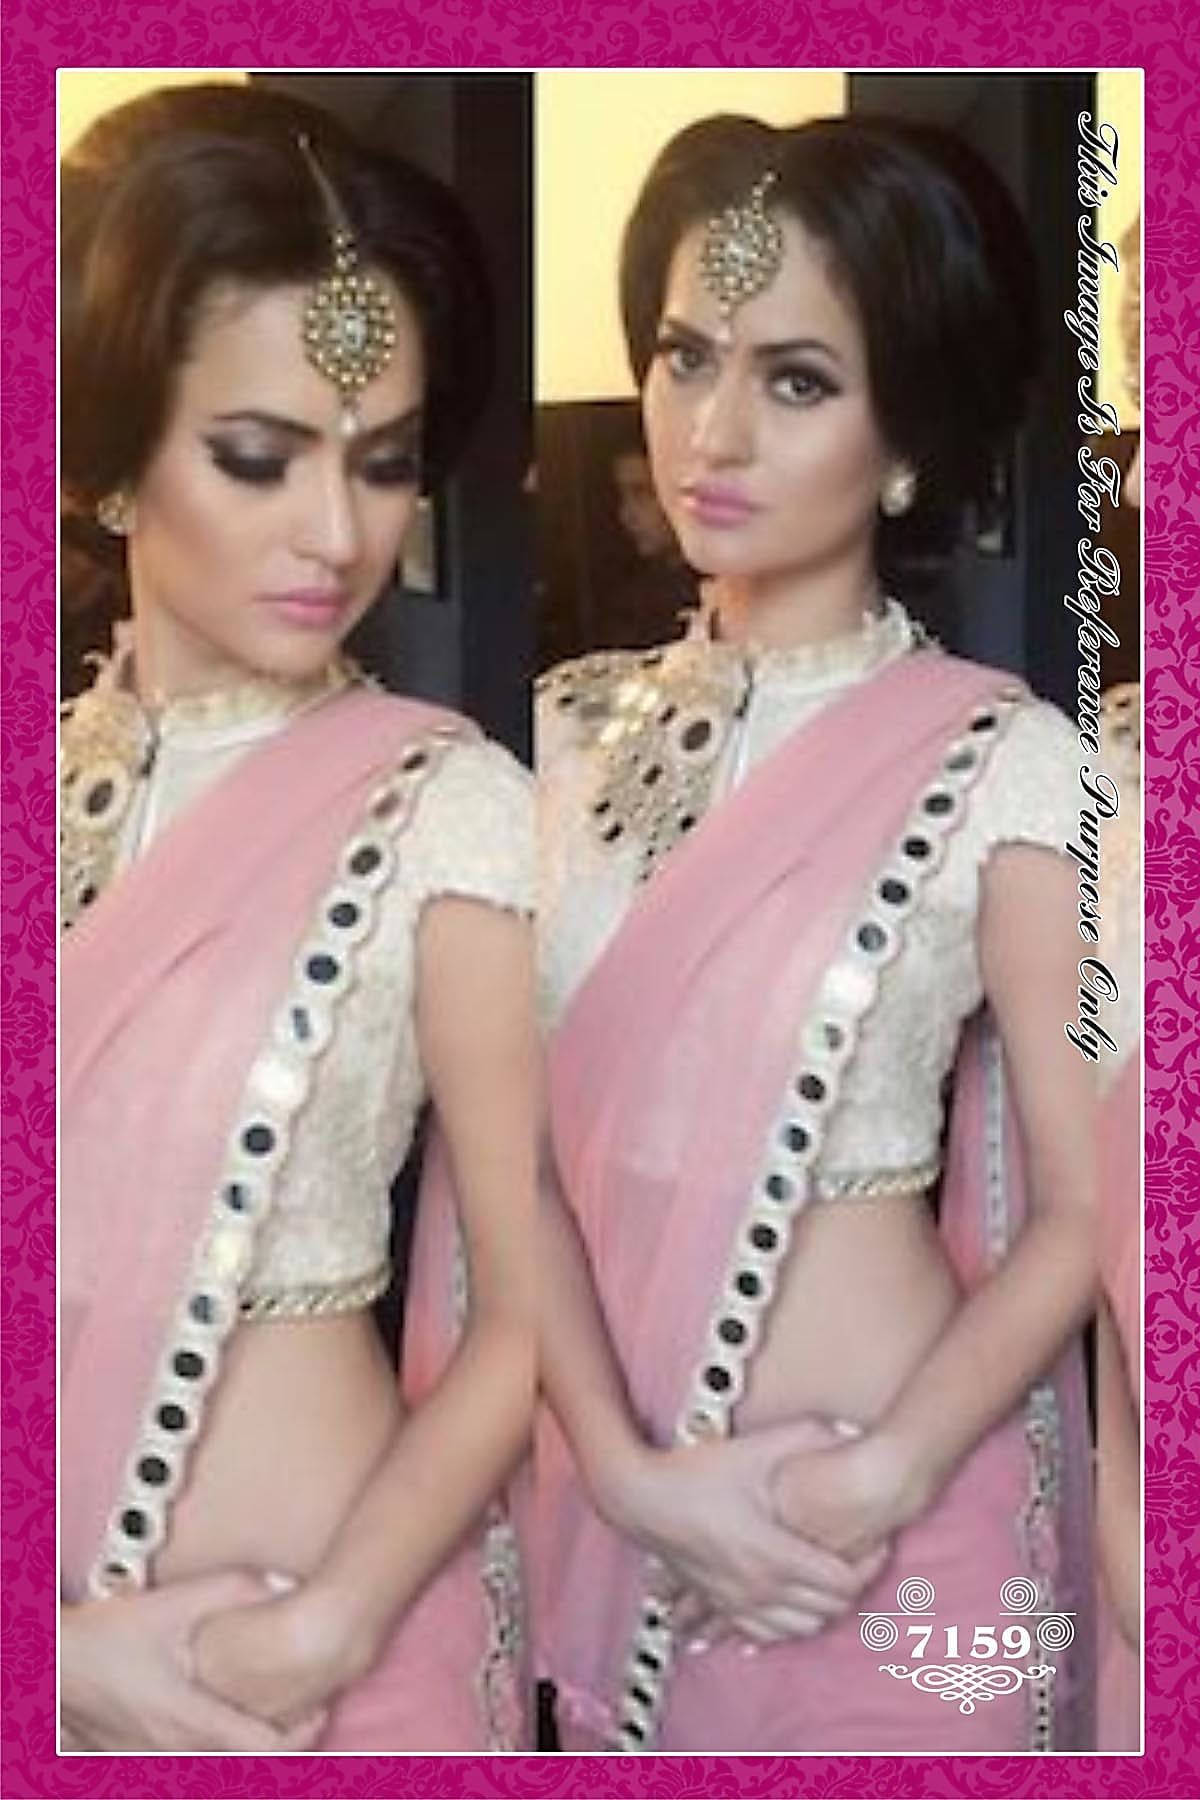 84afe63206 Buy Pink Georgette Saree With Mirror Work On The Border And Neck online. ✯  100% authentic products, ✯ Hand curated, ✯ Timely delivery, ✯ Craftsvilla  ...